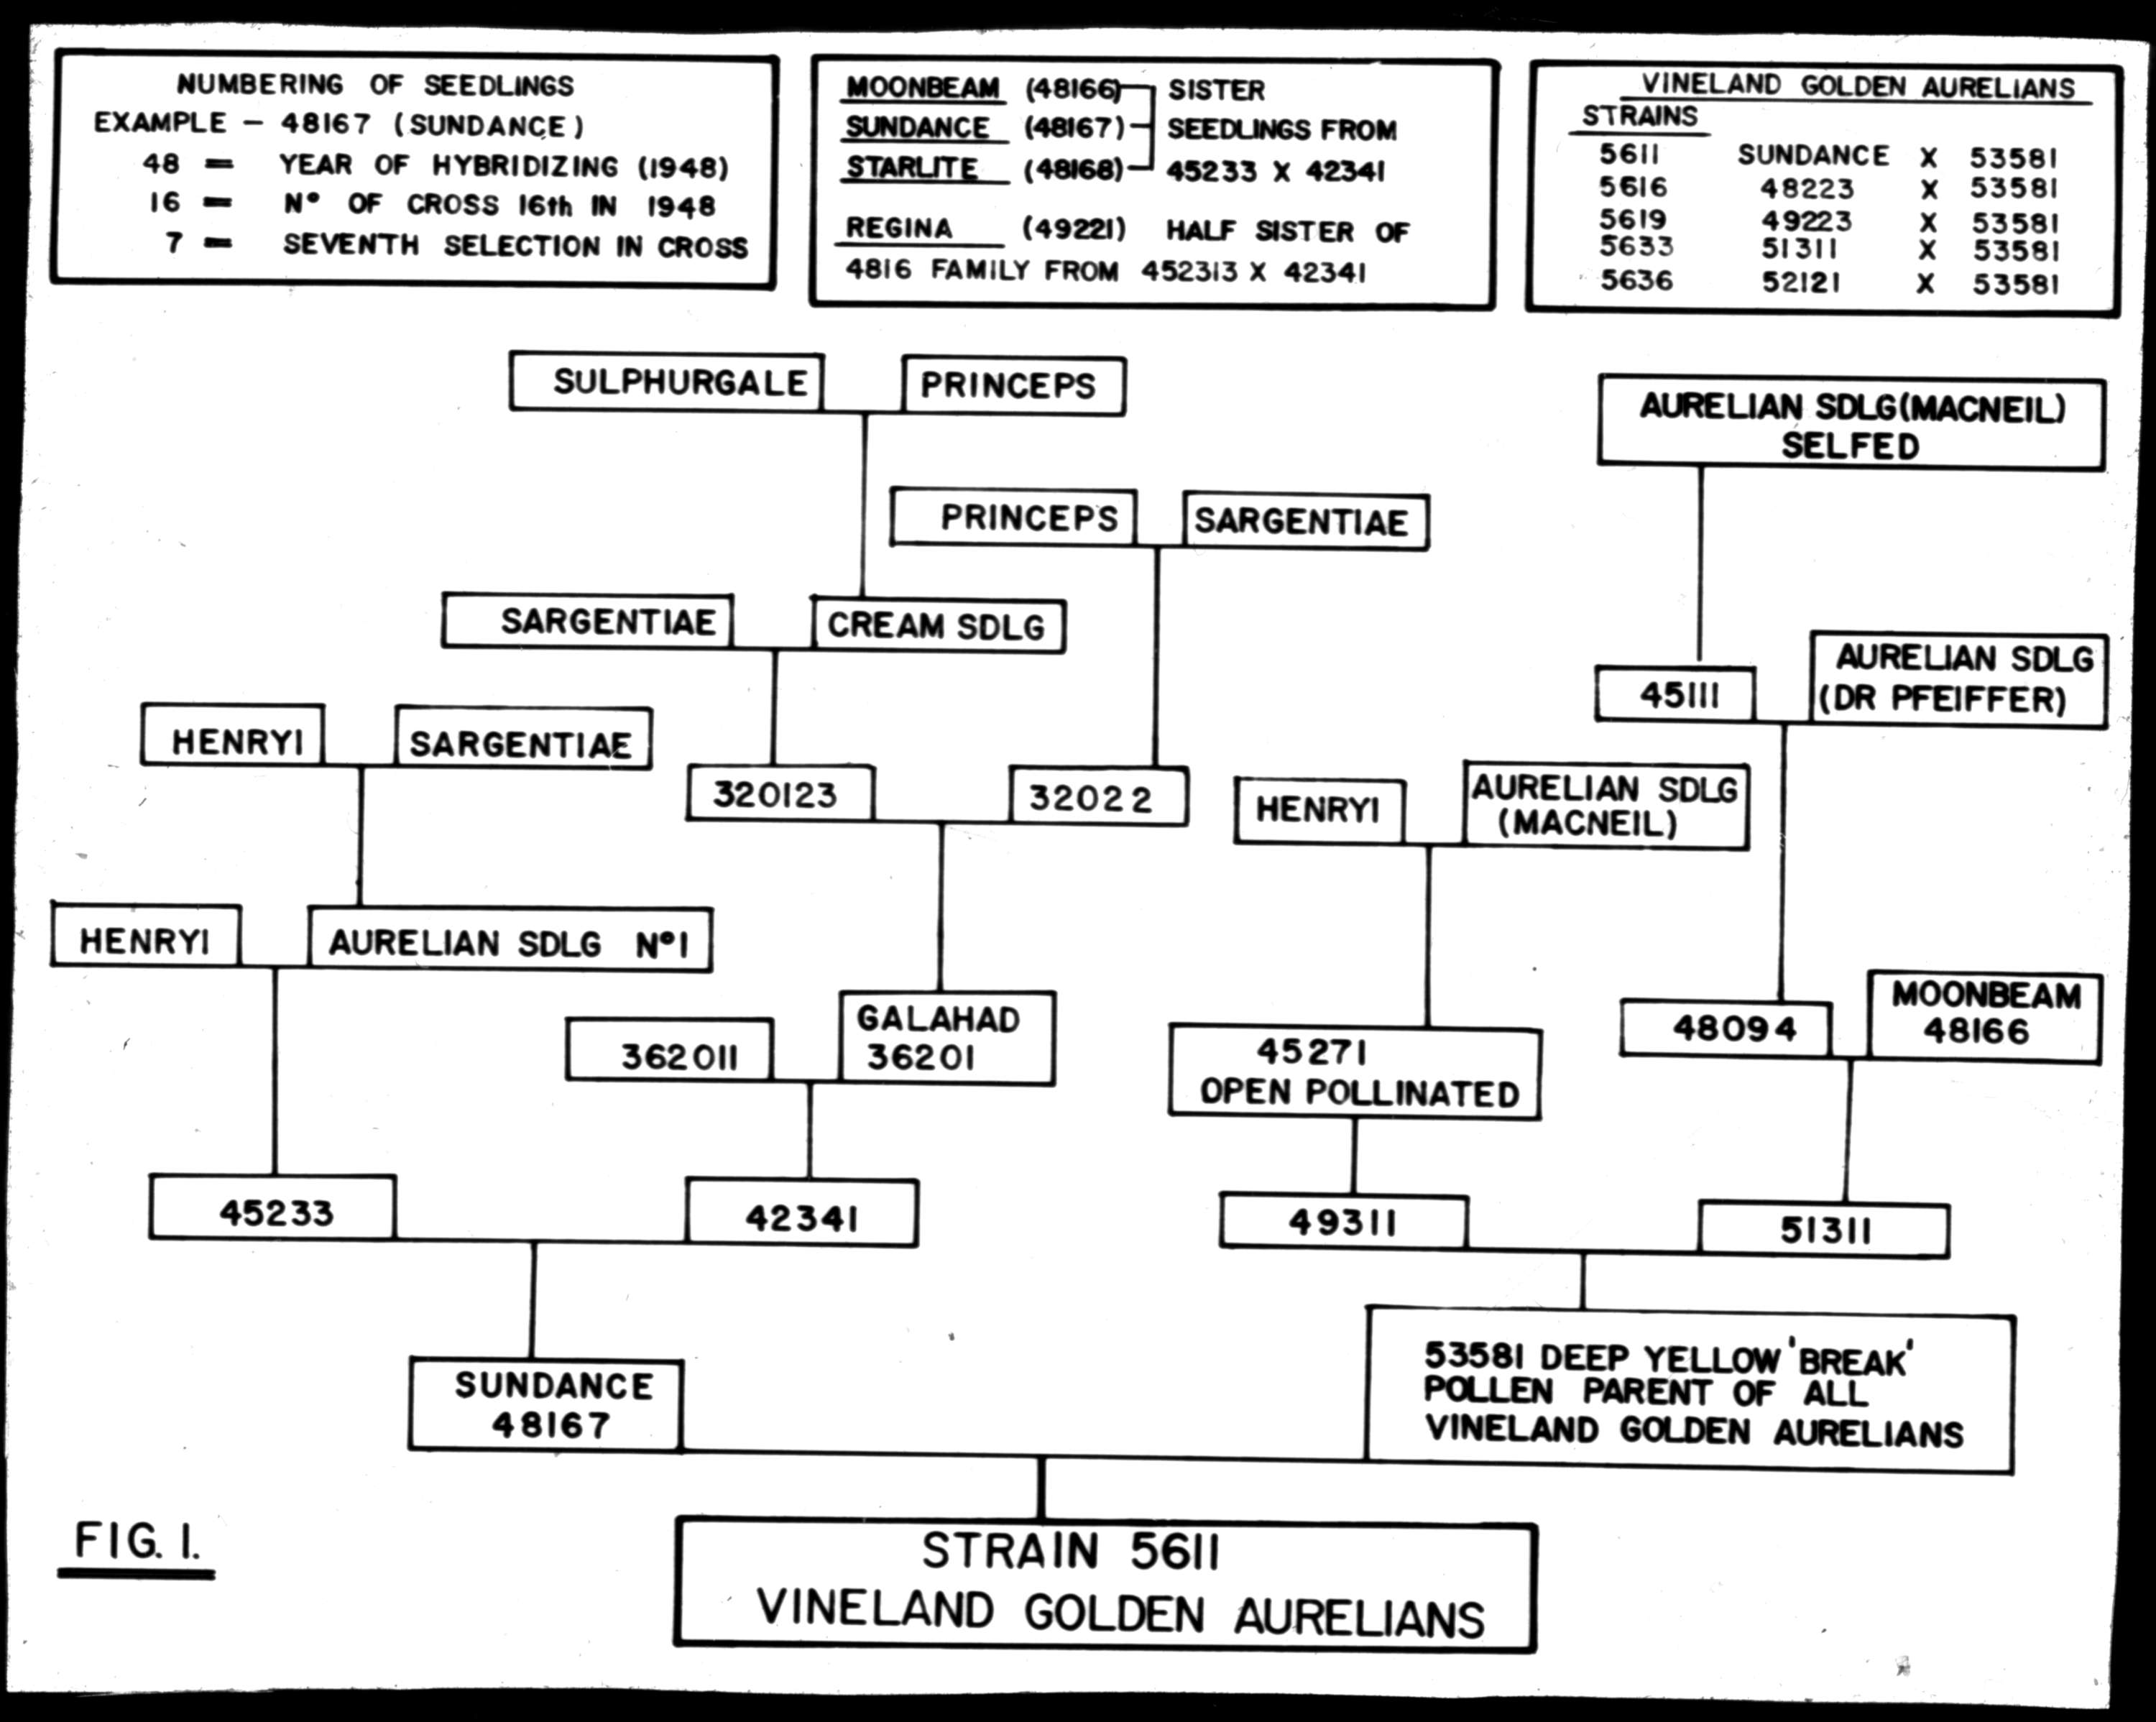 Hybrid Car Wiring Diagram Of A Plant Fuse Box Breeding Chart Fig Ure 1 City Vancouver Archives Rh Searcharchives Ca Engine Topology